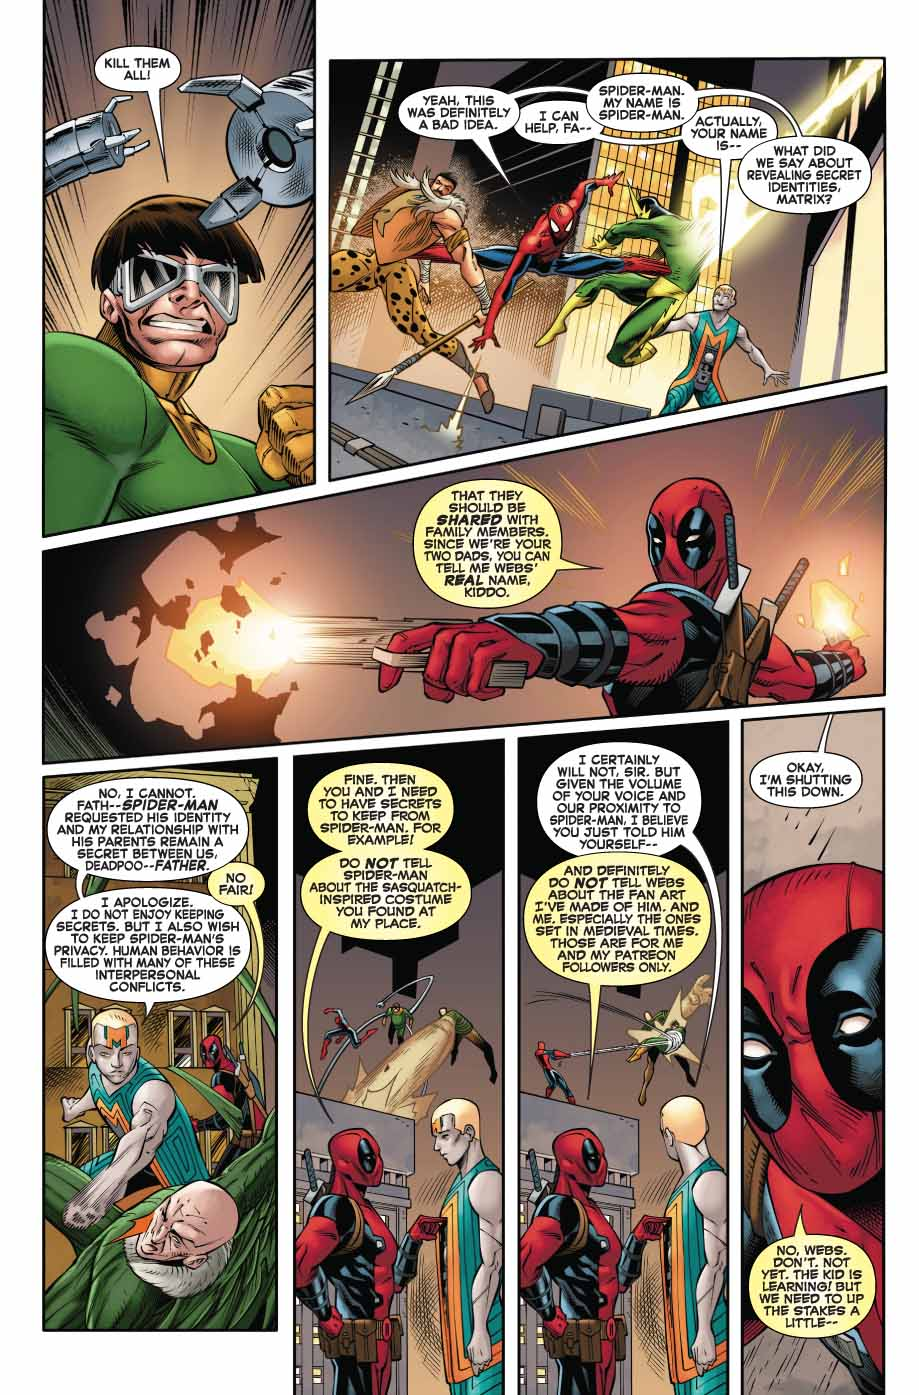 spidermandeadpool373